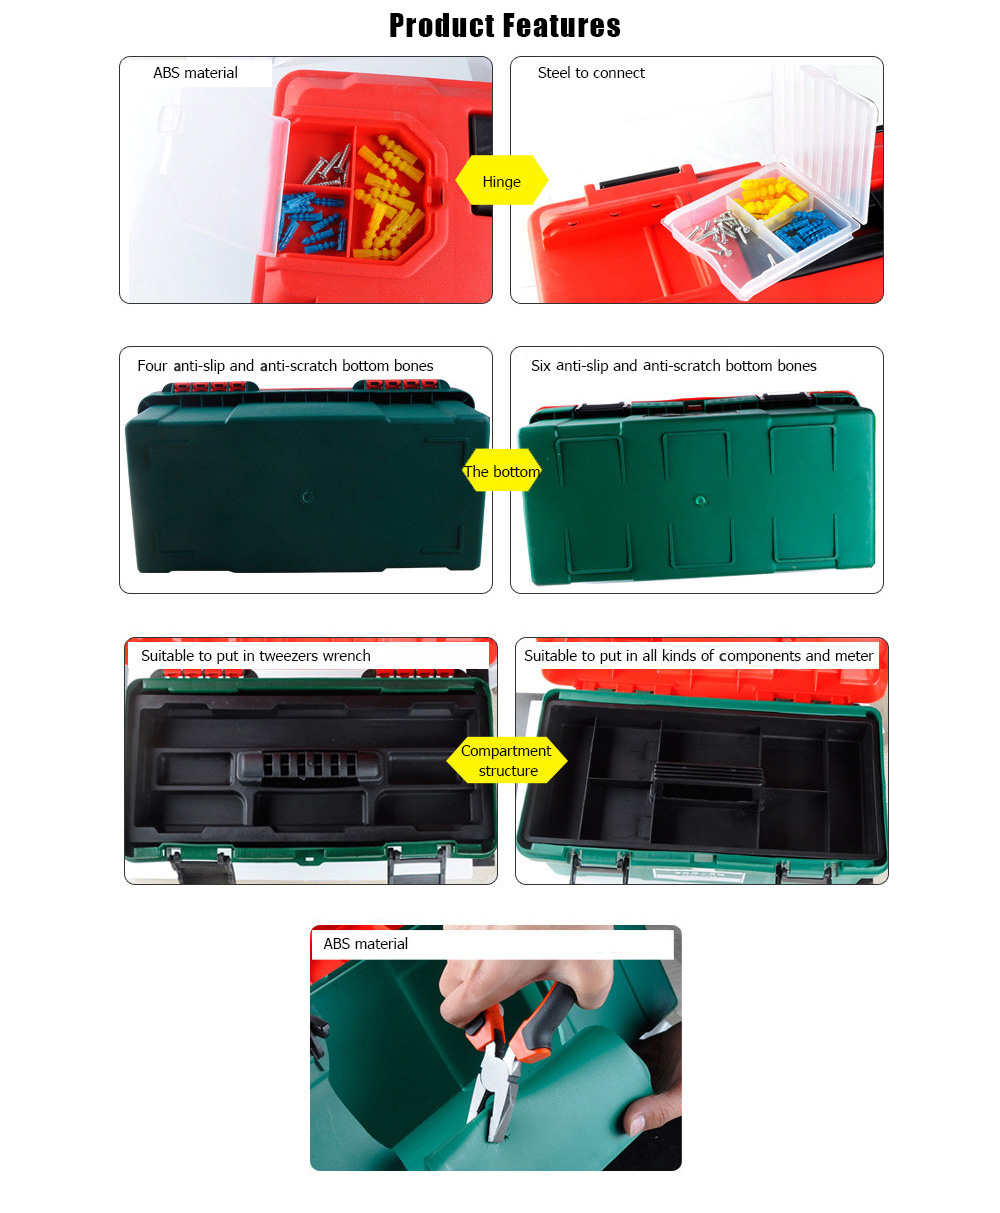 ELECALL 1014 14 inch Intensive Household Portable Toolbox ABS Plastic Storage Box